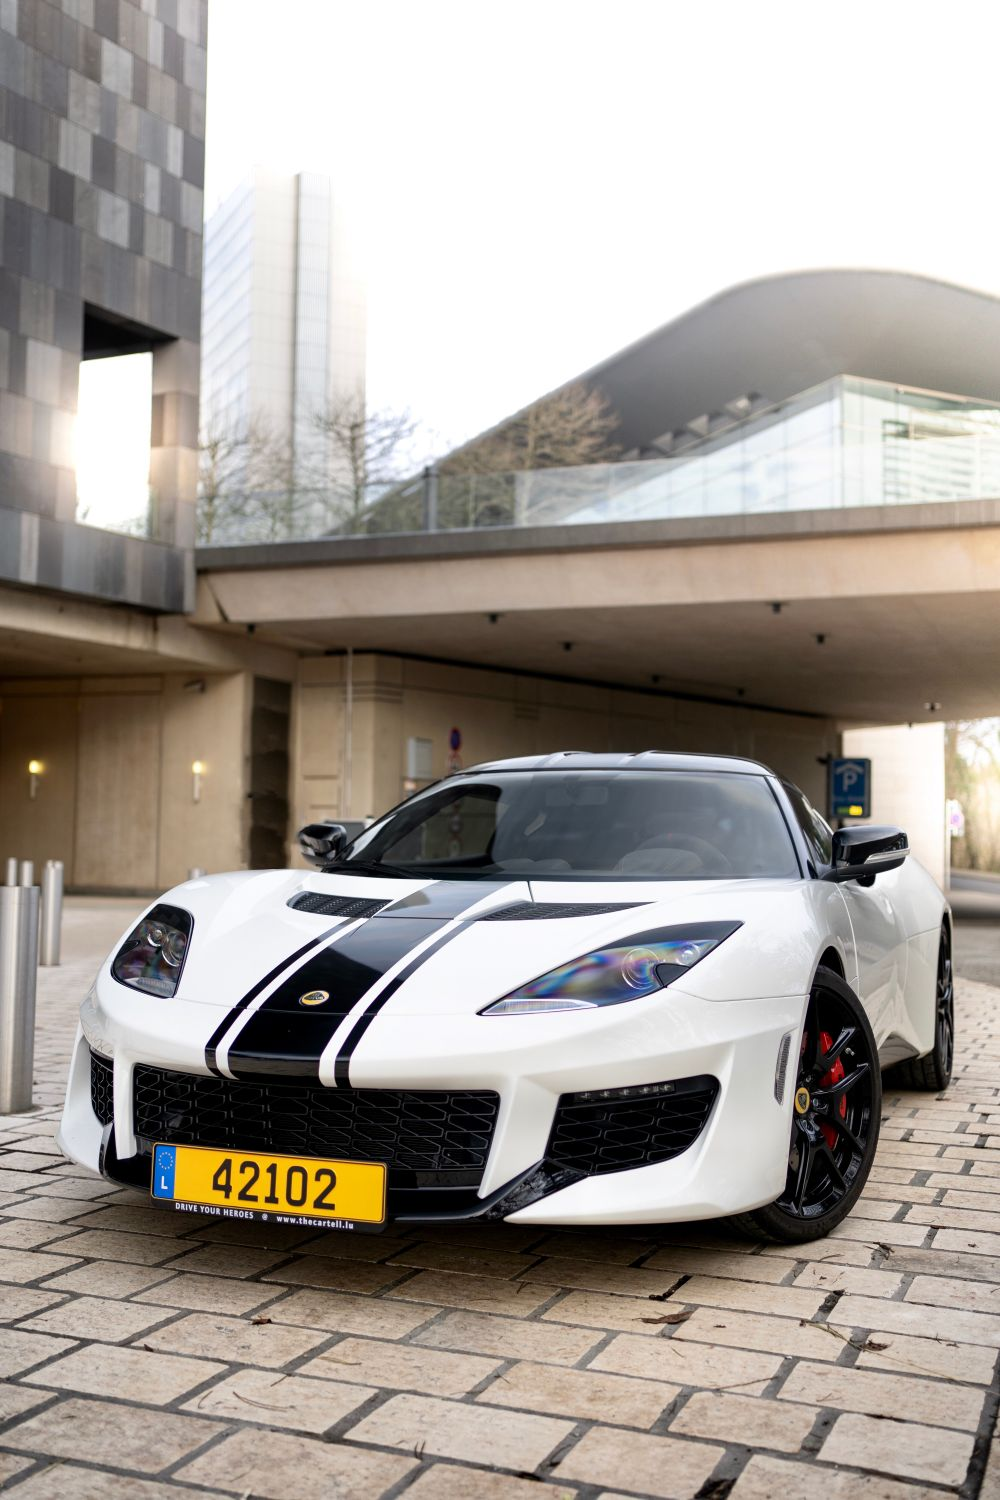 Ellie - Lotus Evora 400